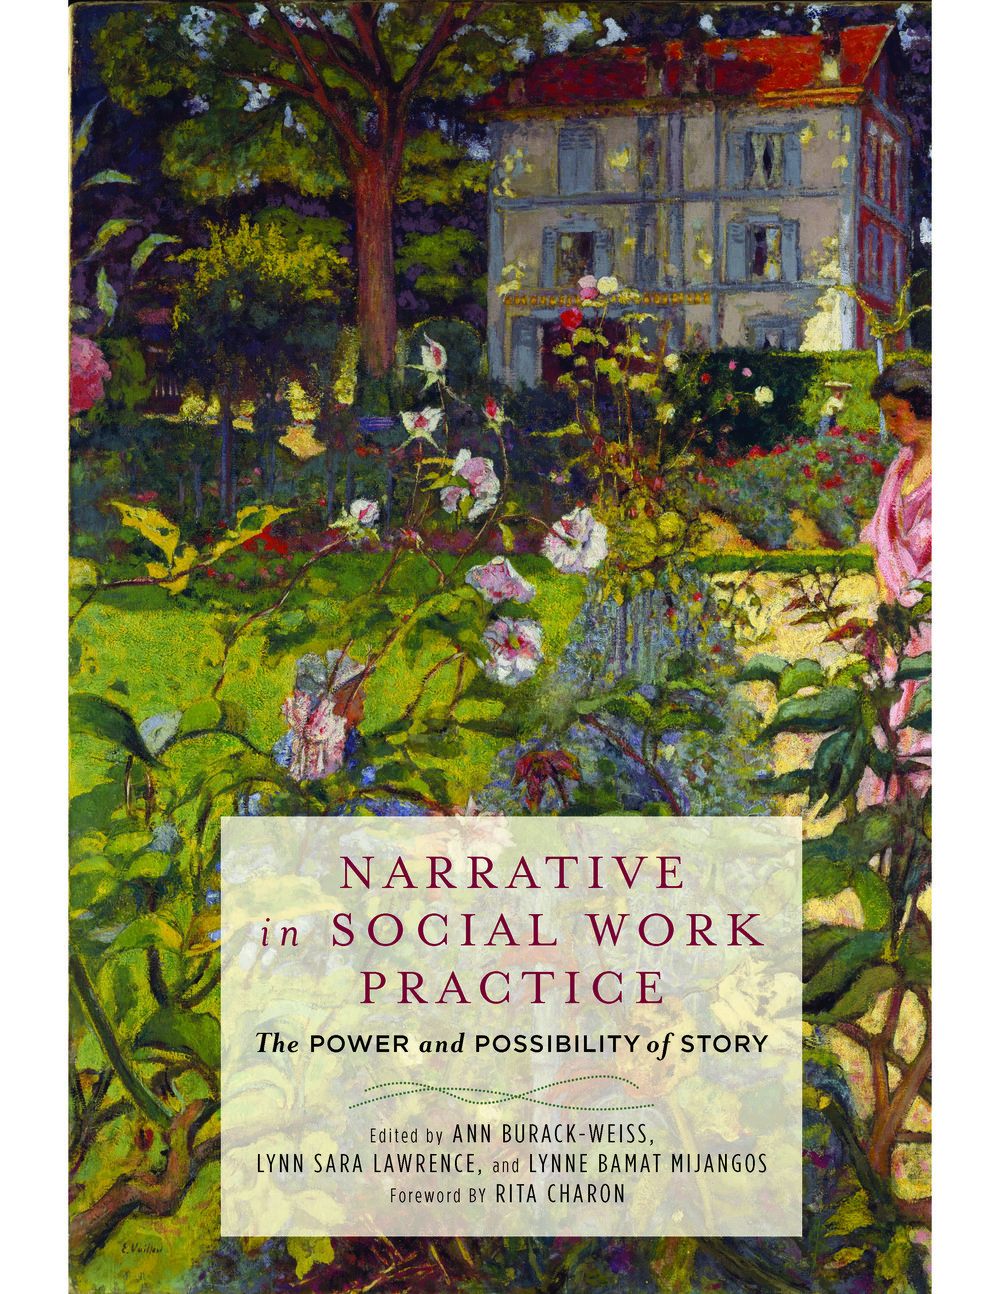 Narrative in Social Work Practice: The Power and Possibility of Story   by Ann Burack-Weiss, Lynn Sara Lawrence and Lynne Bamat Mijangos.